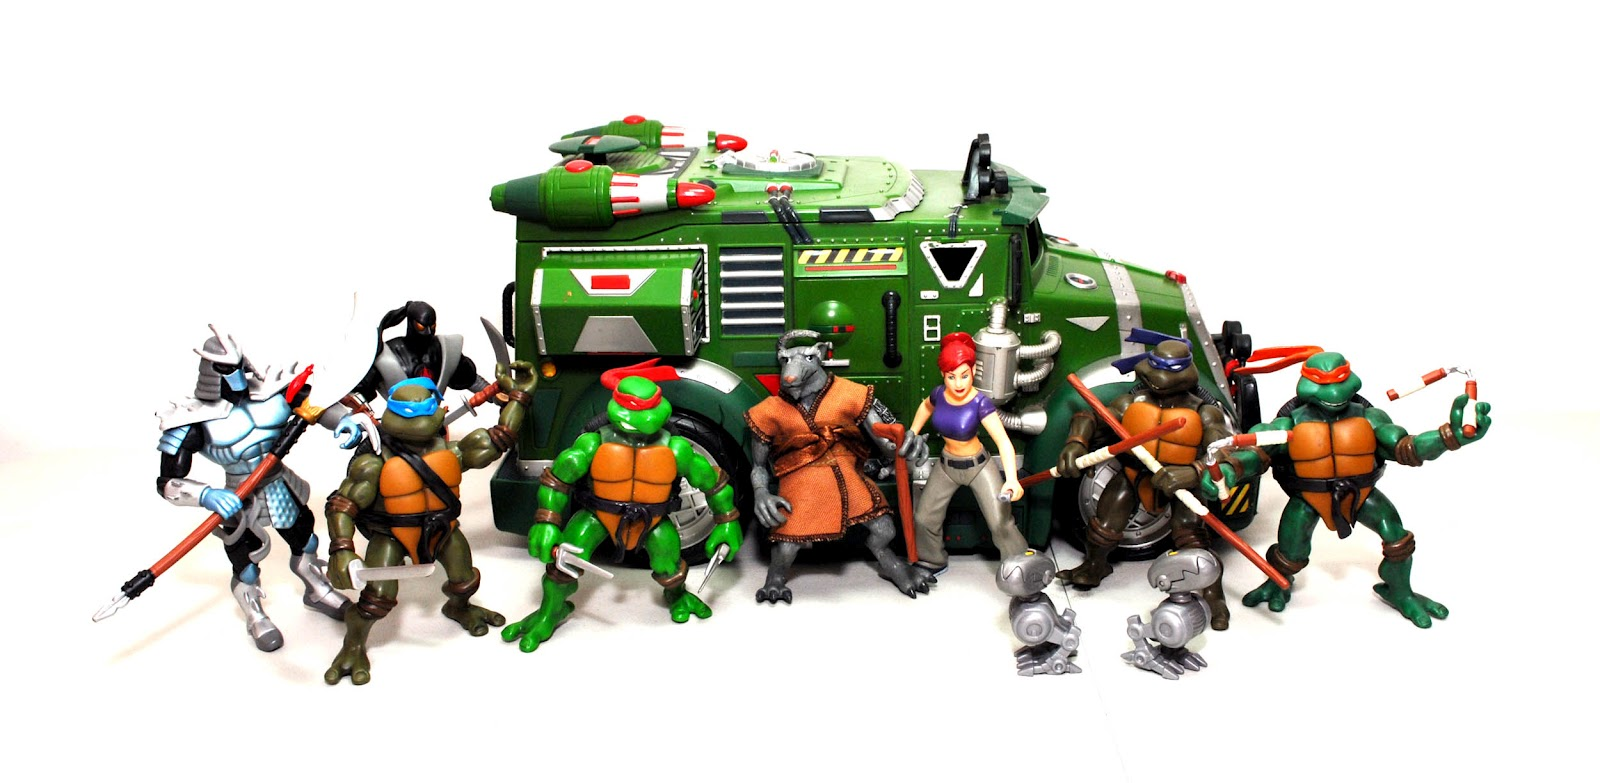 Teenage Mutant Ninja Turtles 2003 Toys : Saturday mornings forever teenage mutant ninja turtles